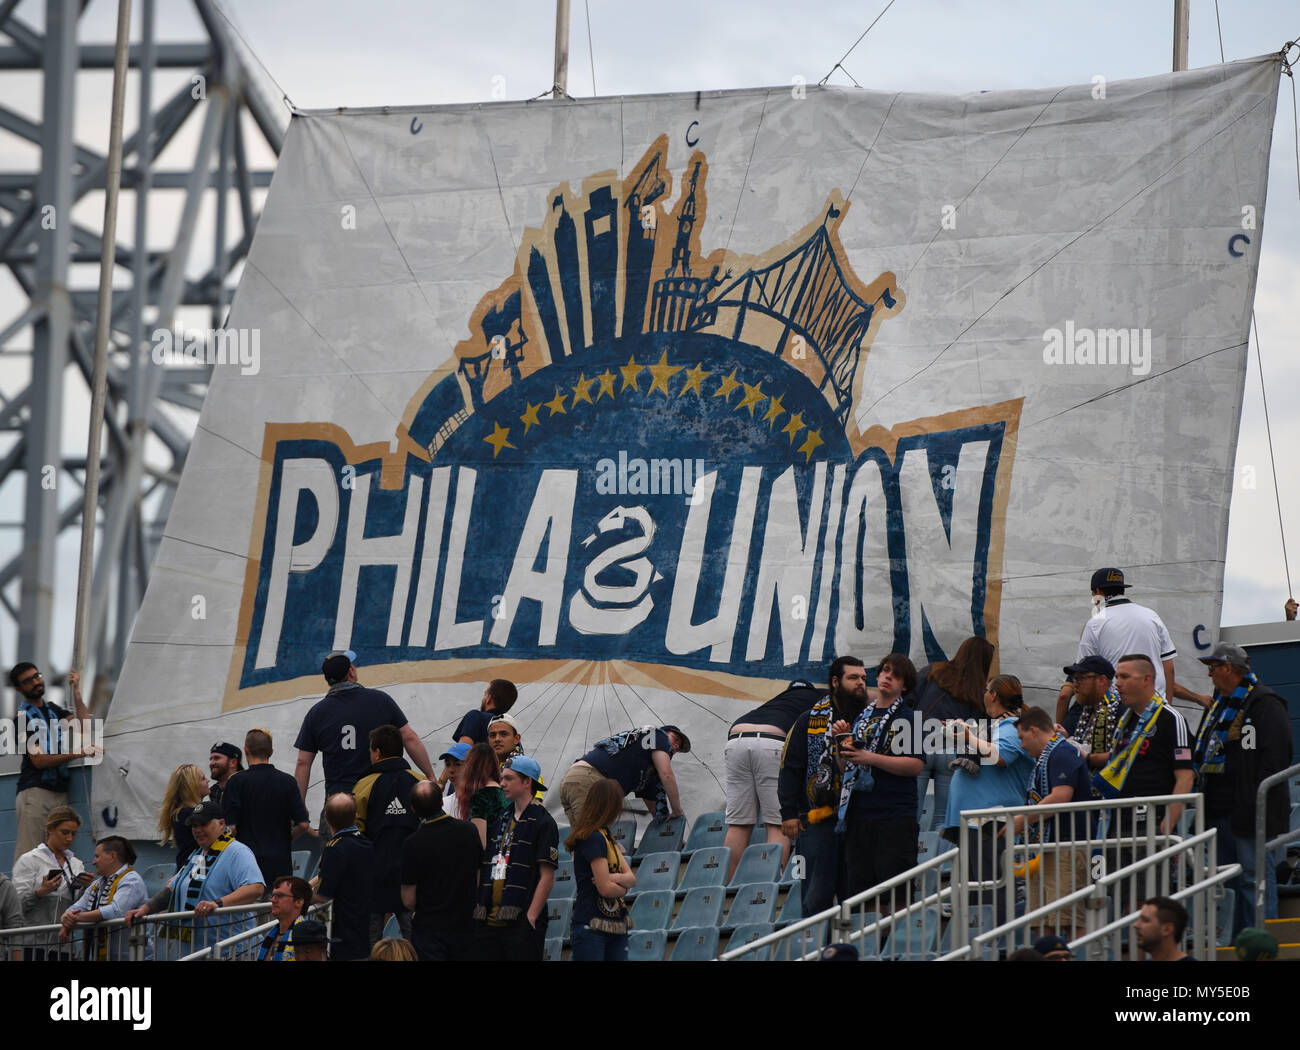 Chester, Pennsylvania, USA. 5th June, 2018. Philadelphia Union fans holding their banner before the start of the match between the Union and the Richmond Kickers at Talen Energy Stadium, Chester PA Credit: Ricky Fitchett/ZUMA Wire/Alamy Live News Stock Photo